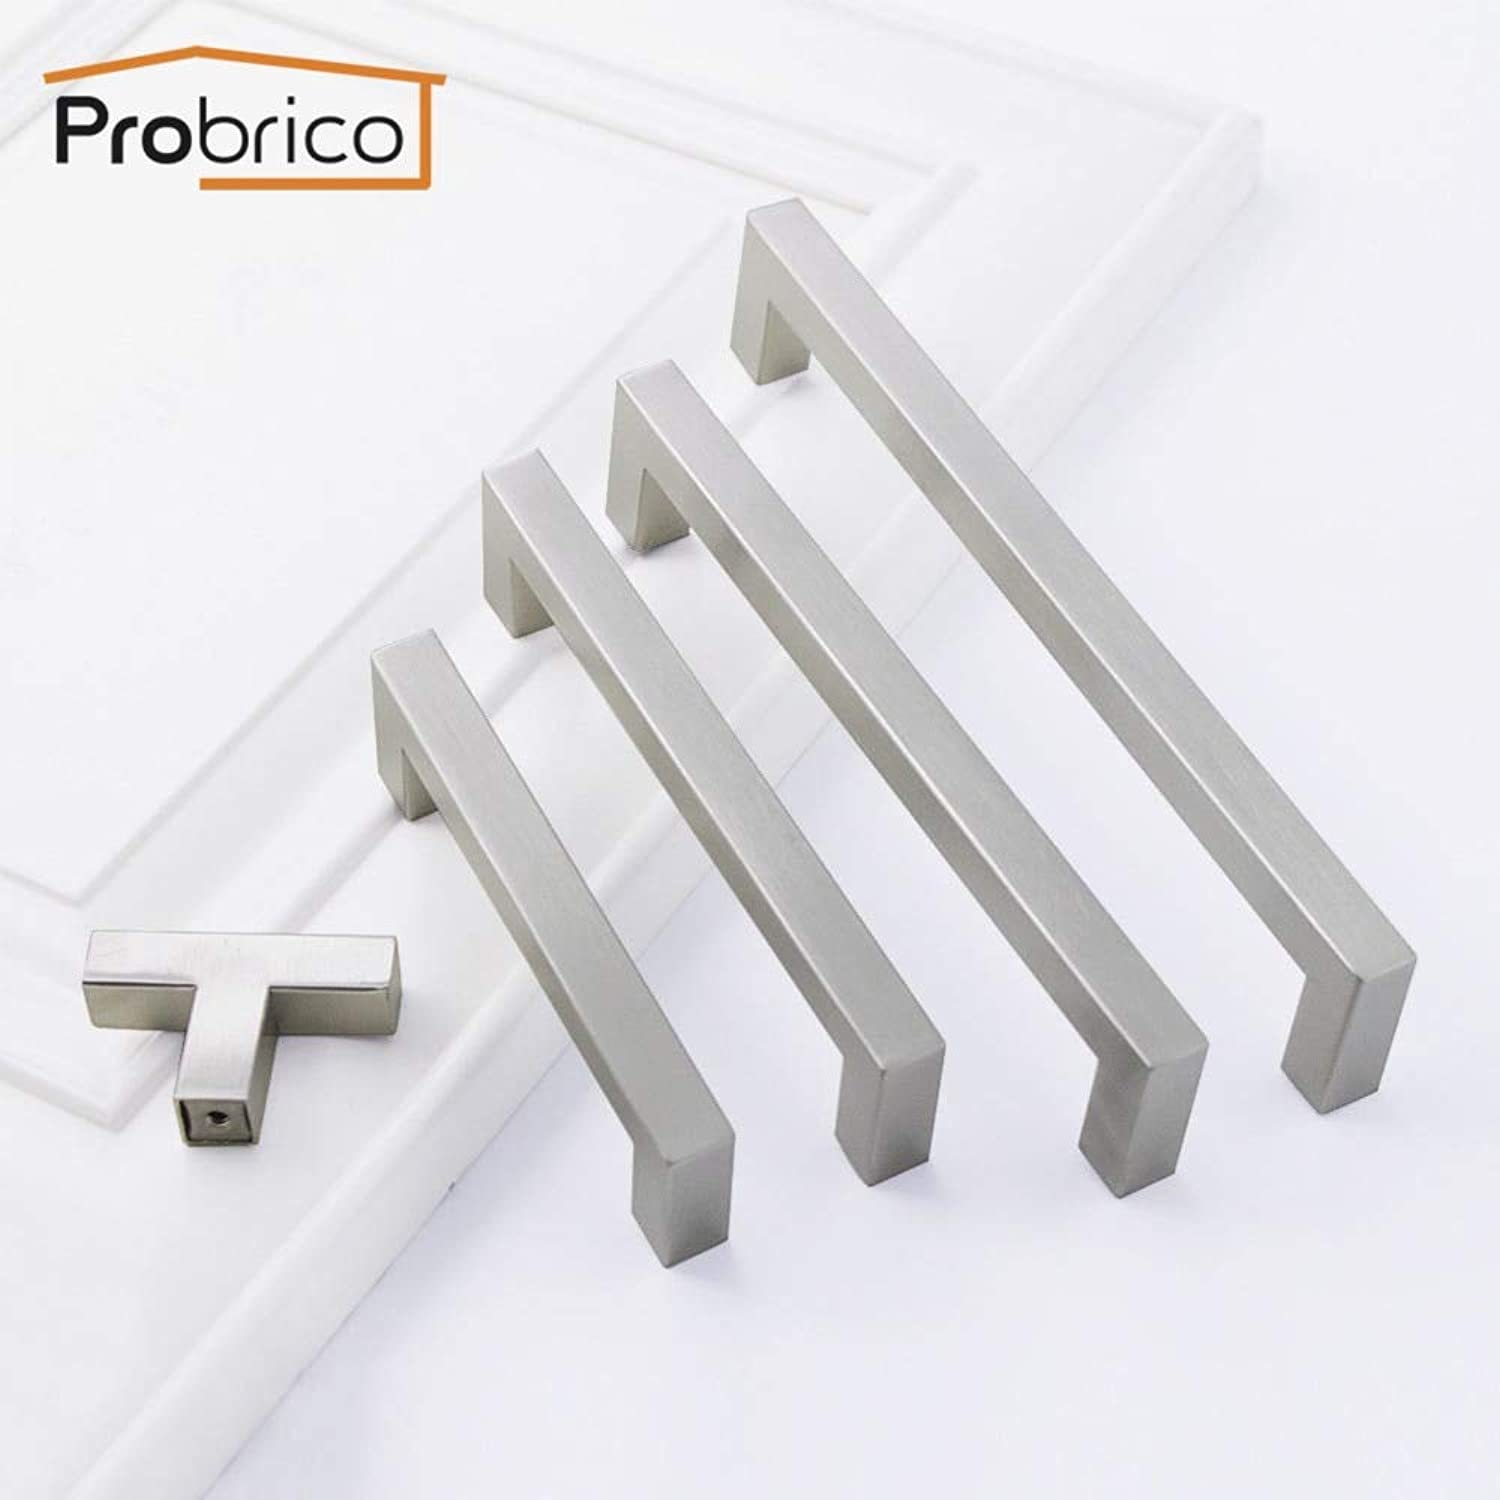 ff550357b1 Probrico Square T Bar Kitchen Door Cabinet knobs and Handles for Furniture  Bathroom Wardrobe Stainless Steel